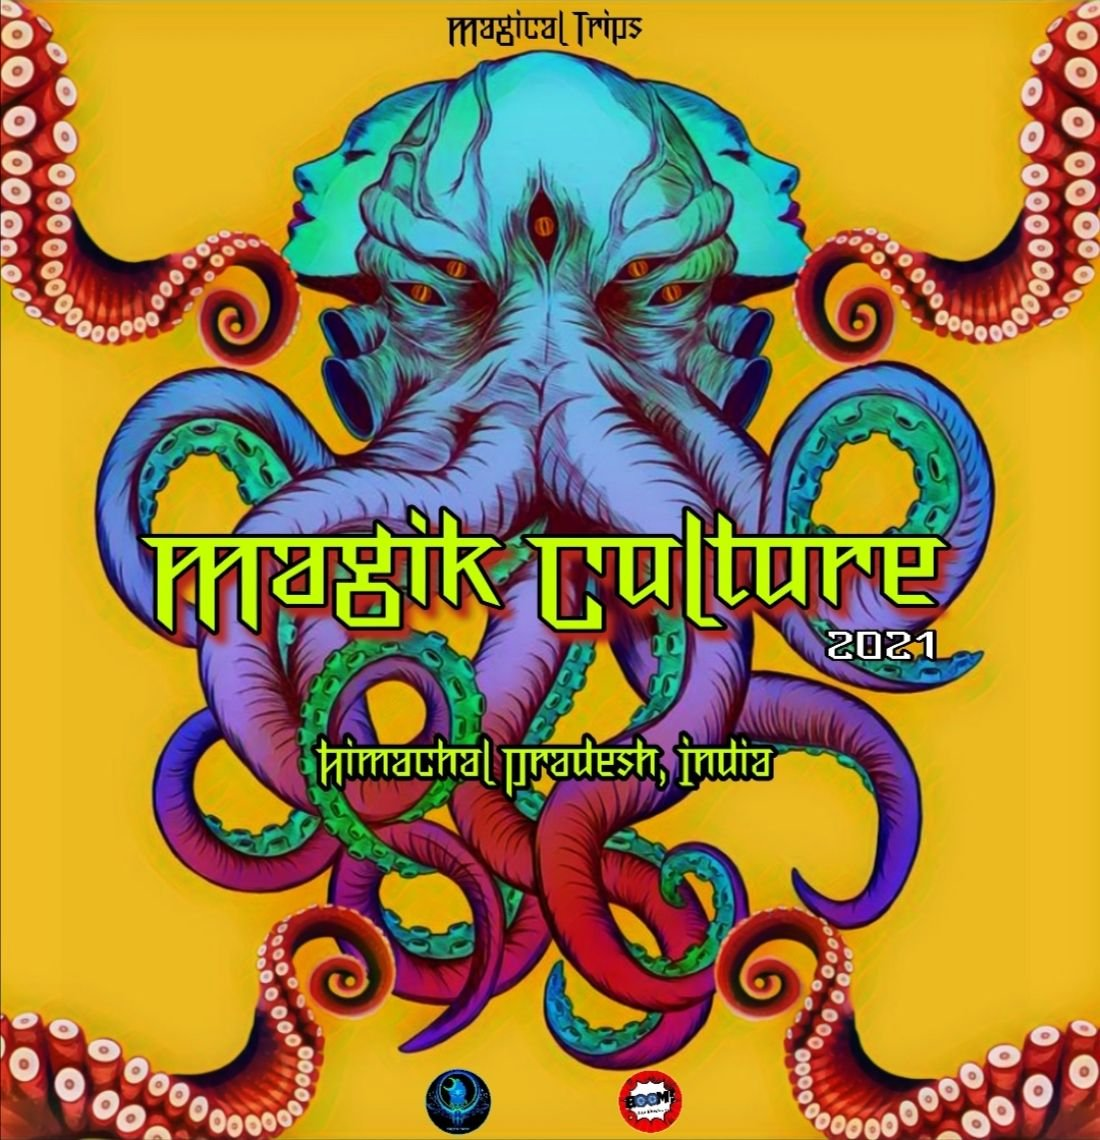 Magik Culture - 2021, 14 May   Event in Kasol   AllEvents.in